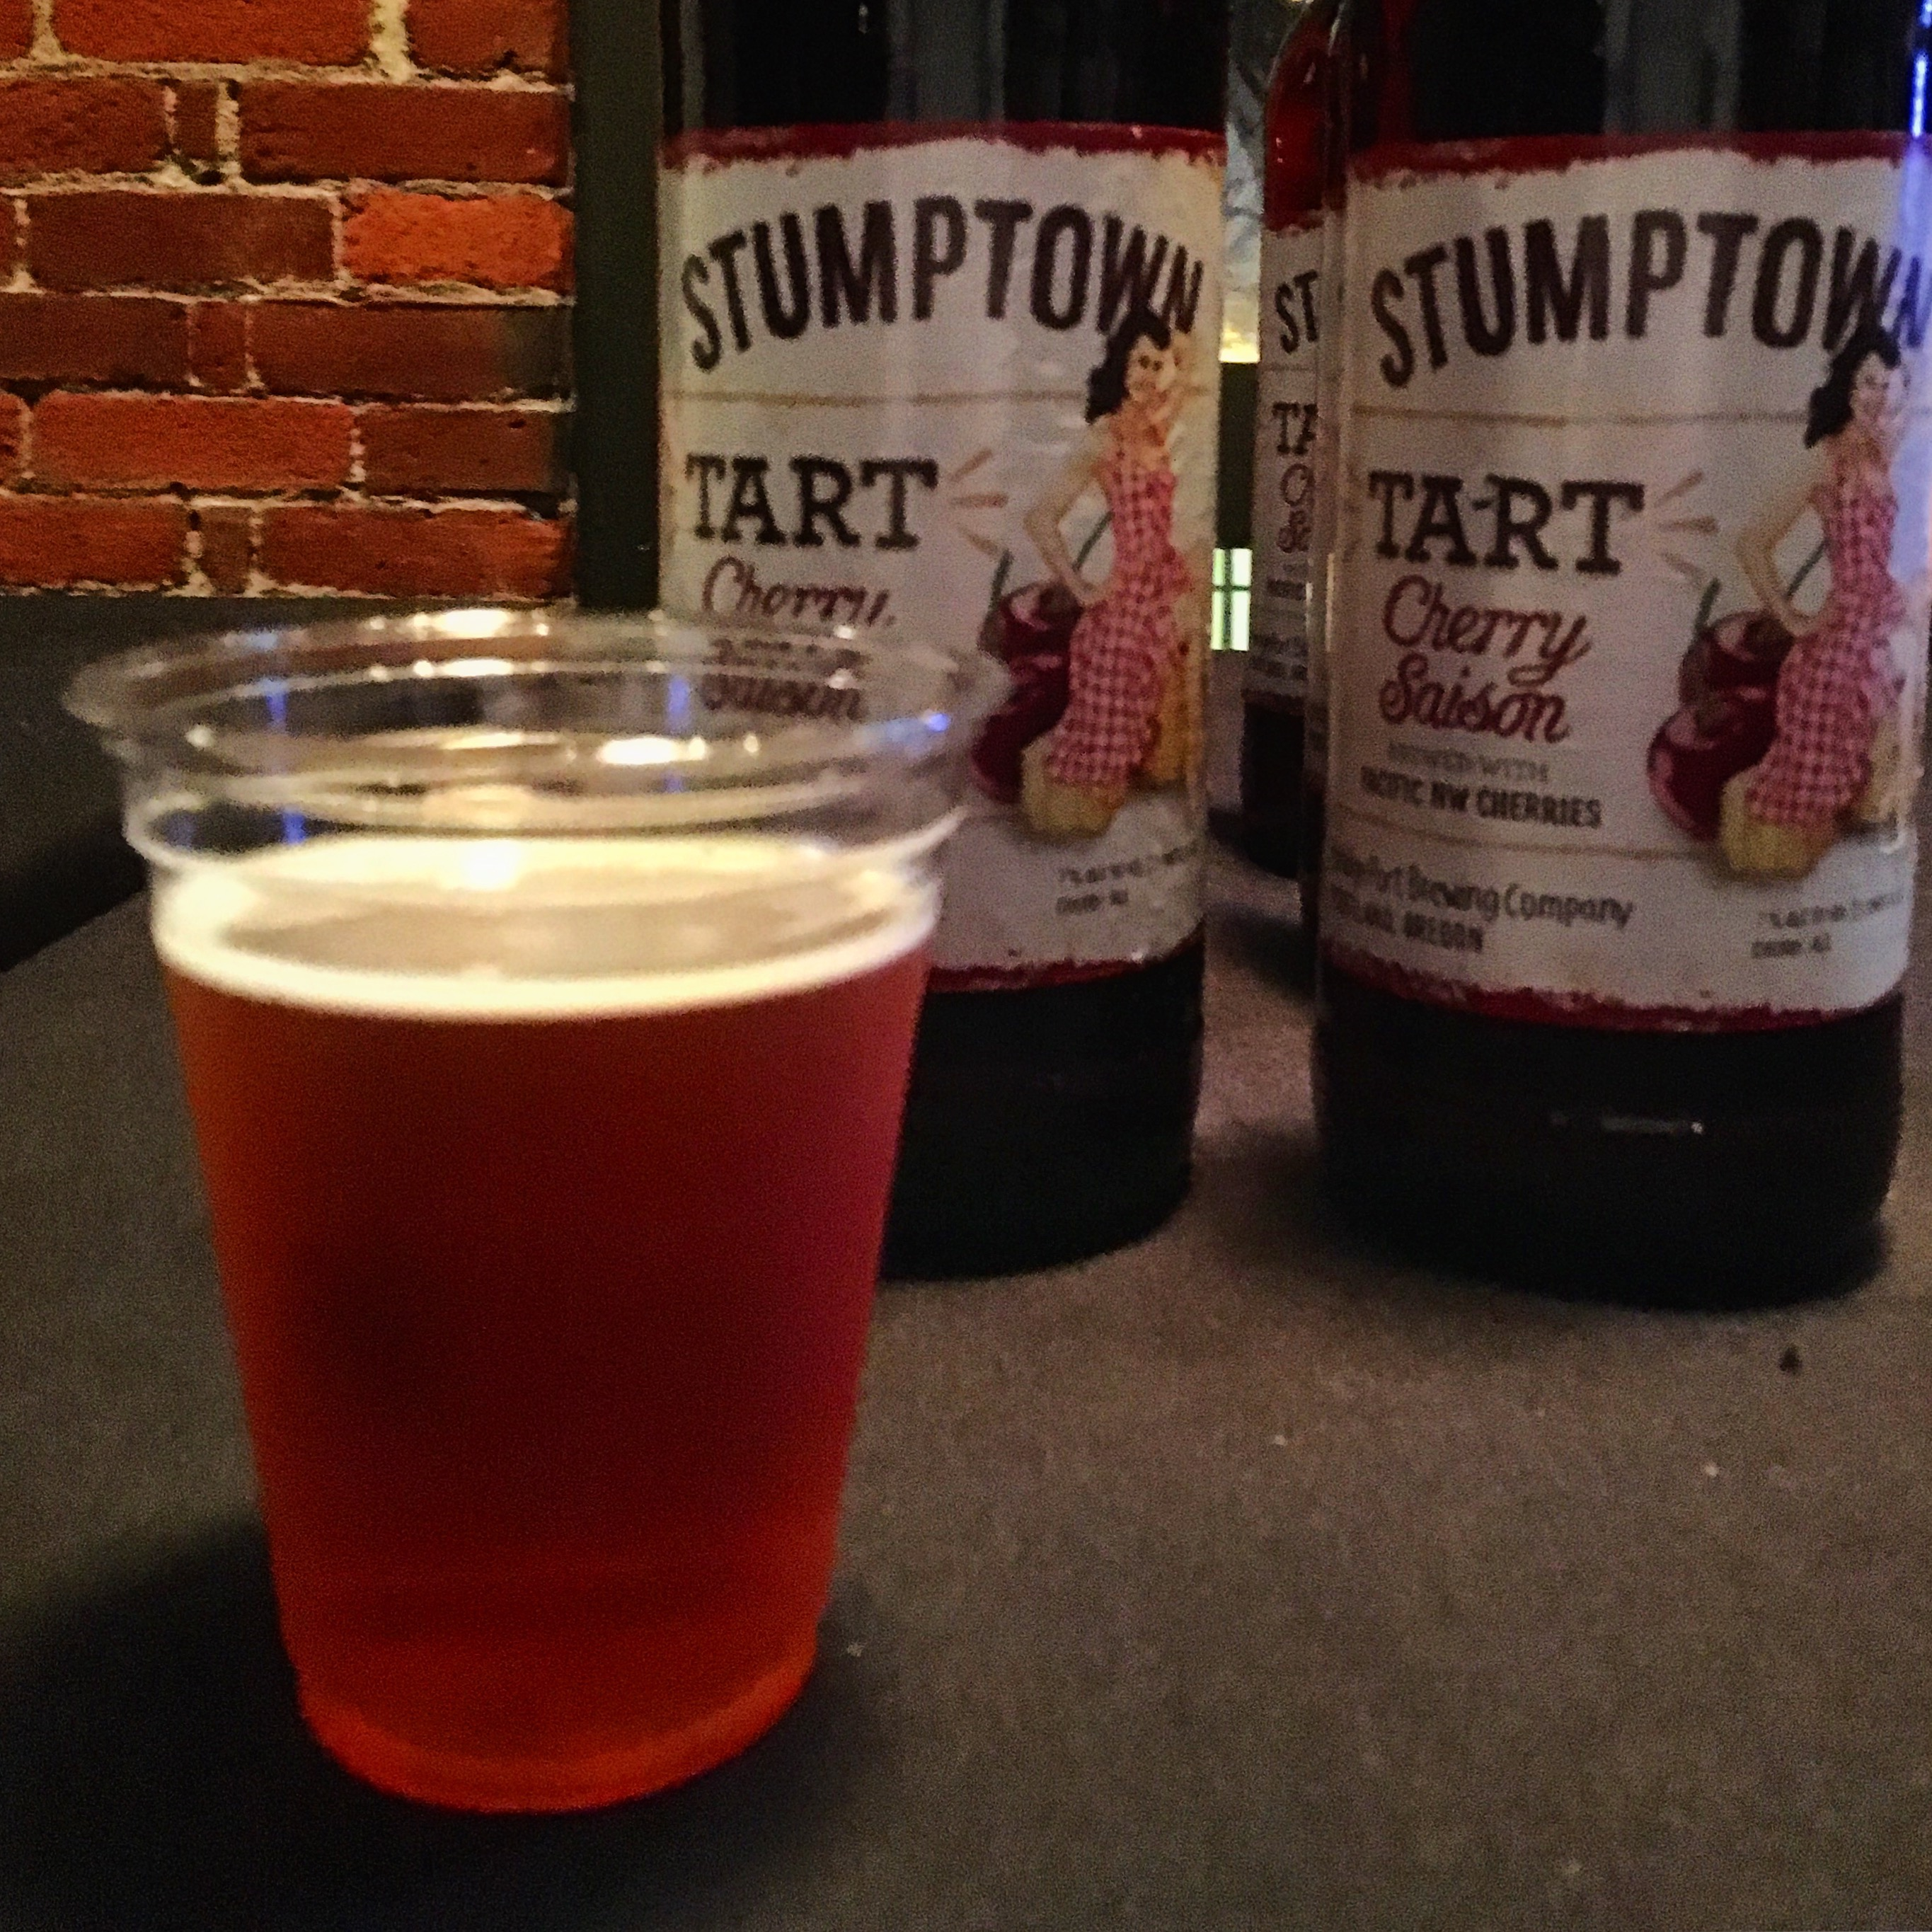 2016 BridgePort Stumptown Tart